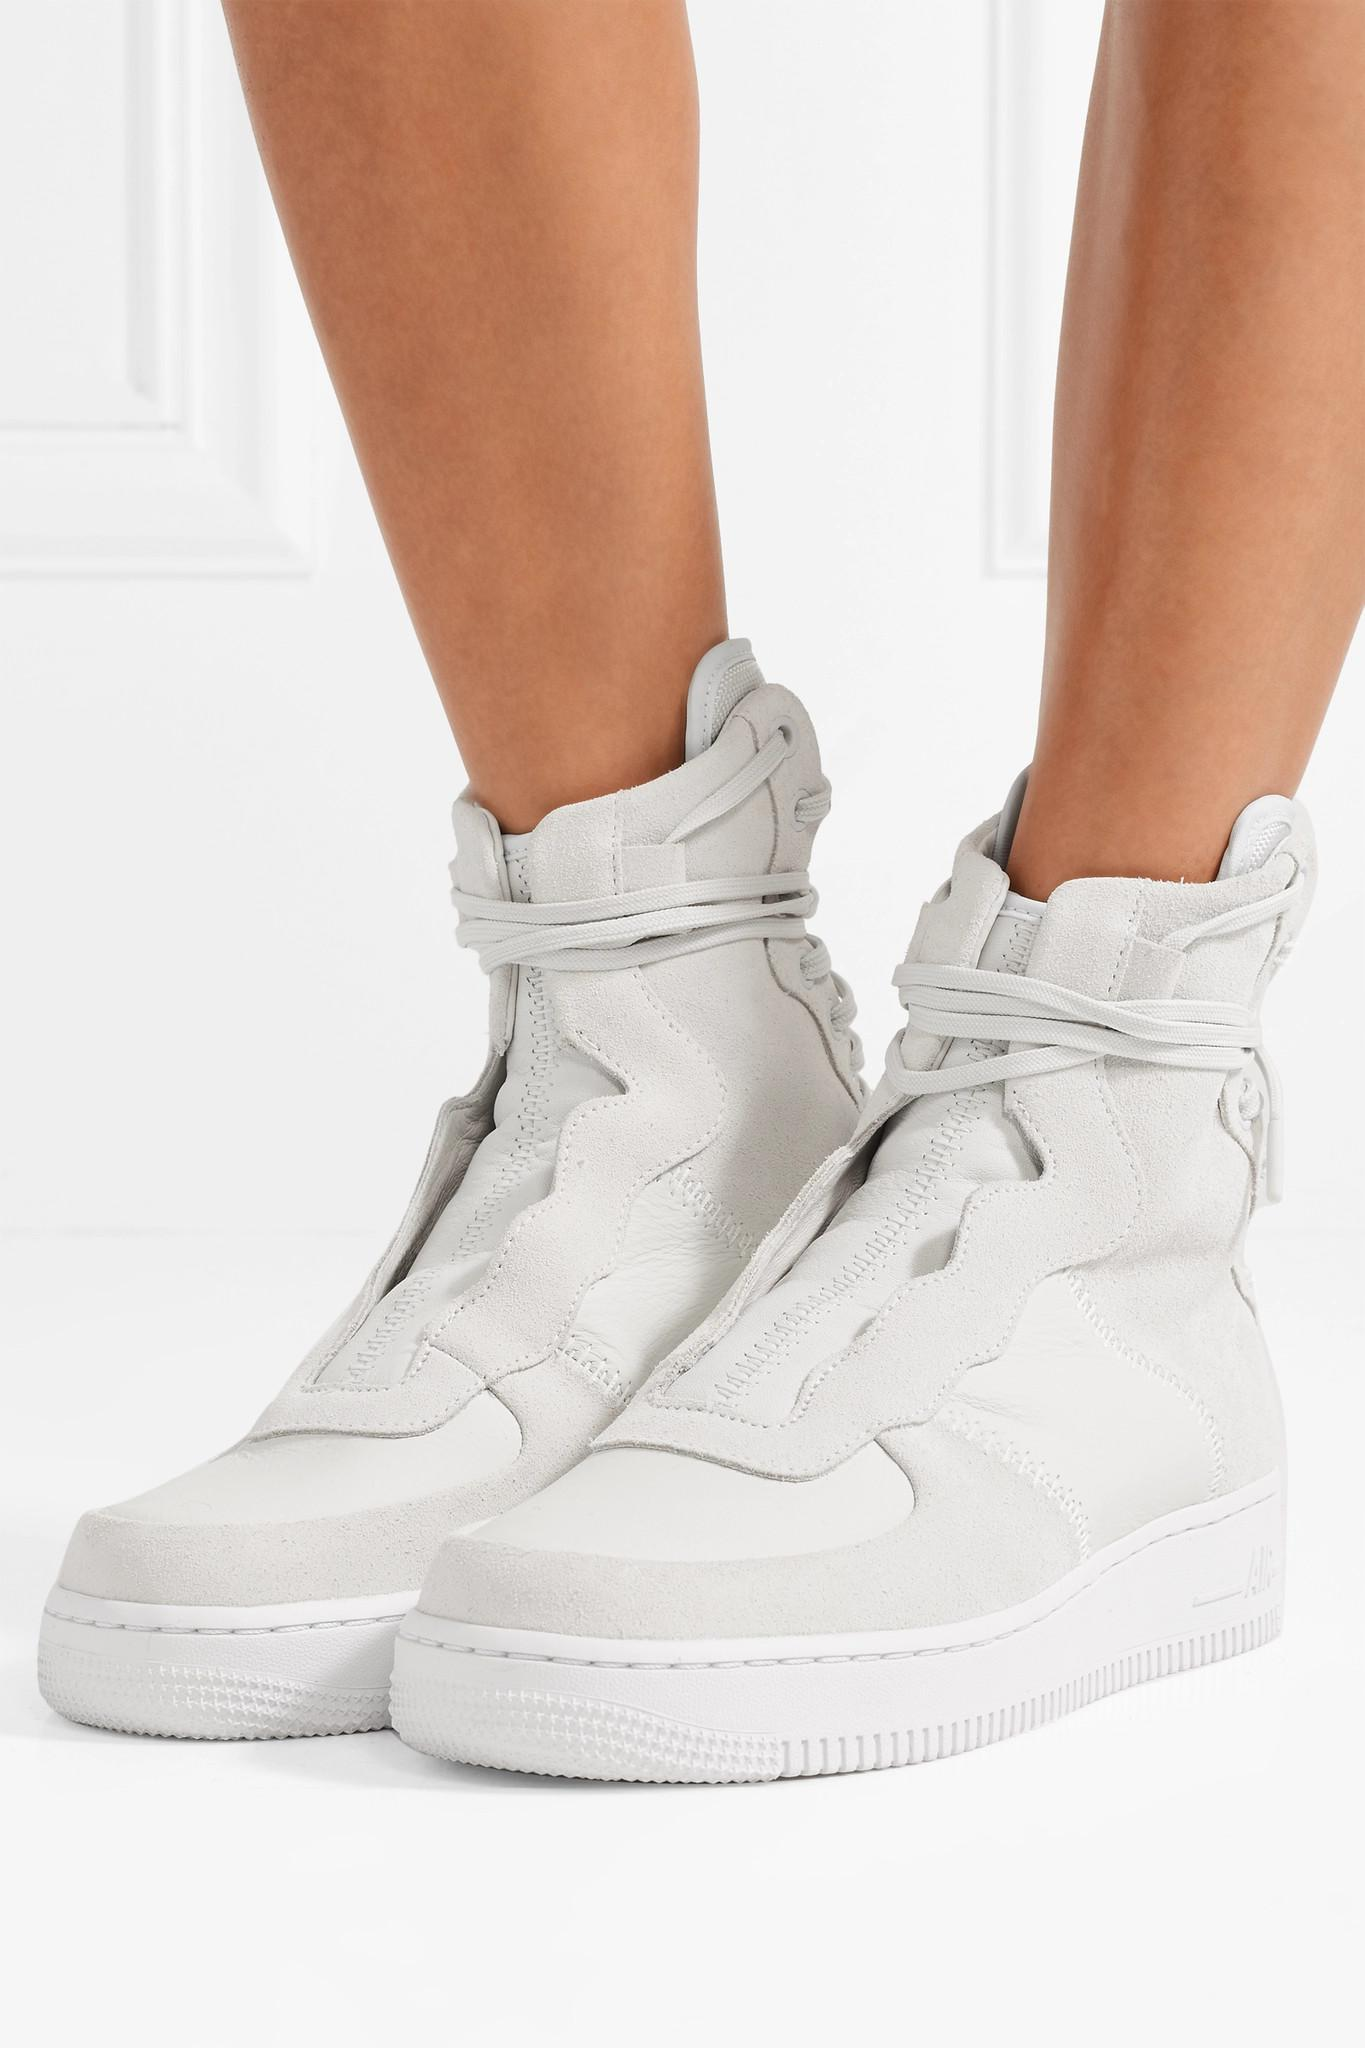 info for 7707d 7c4c3 Women's White The 1's Reimagined Air Force 1 Rebel Xx Suede And Leather  High-top Sneakers